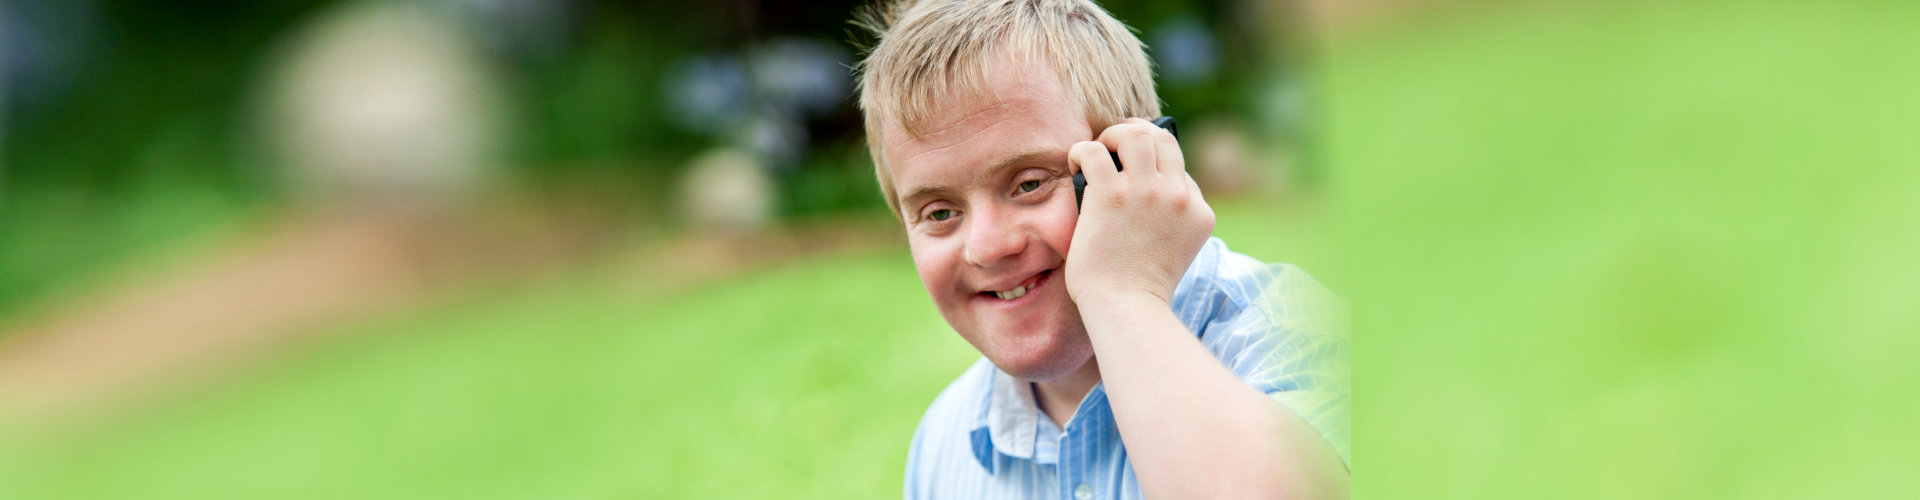 Happy boy calling someone on the phone